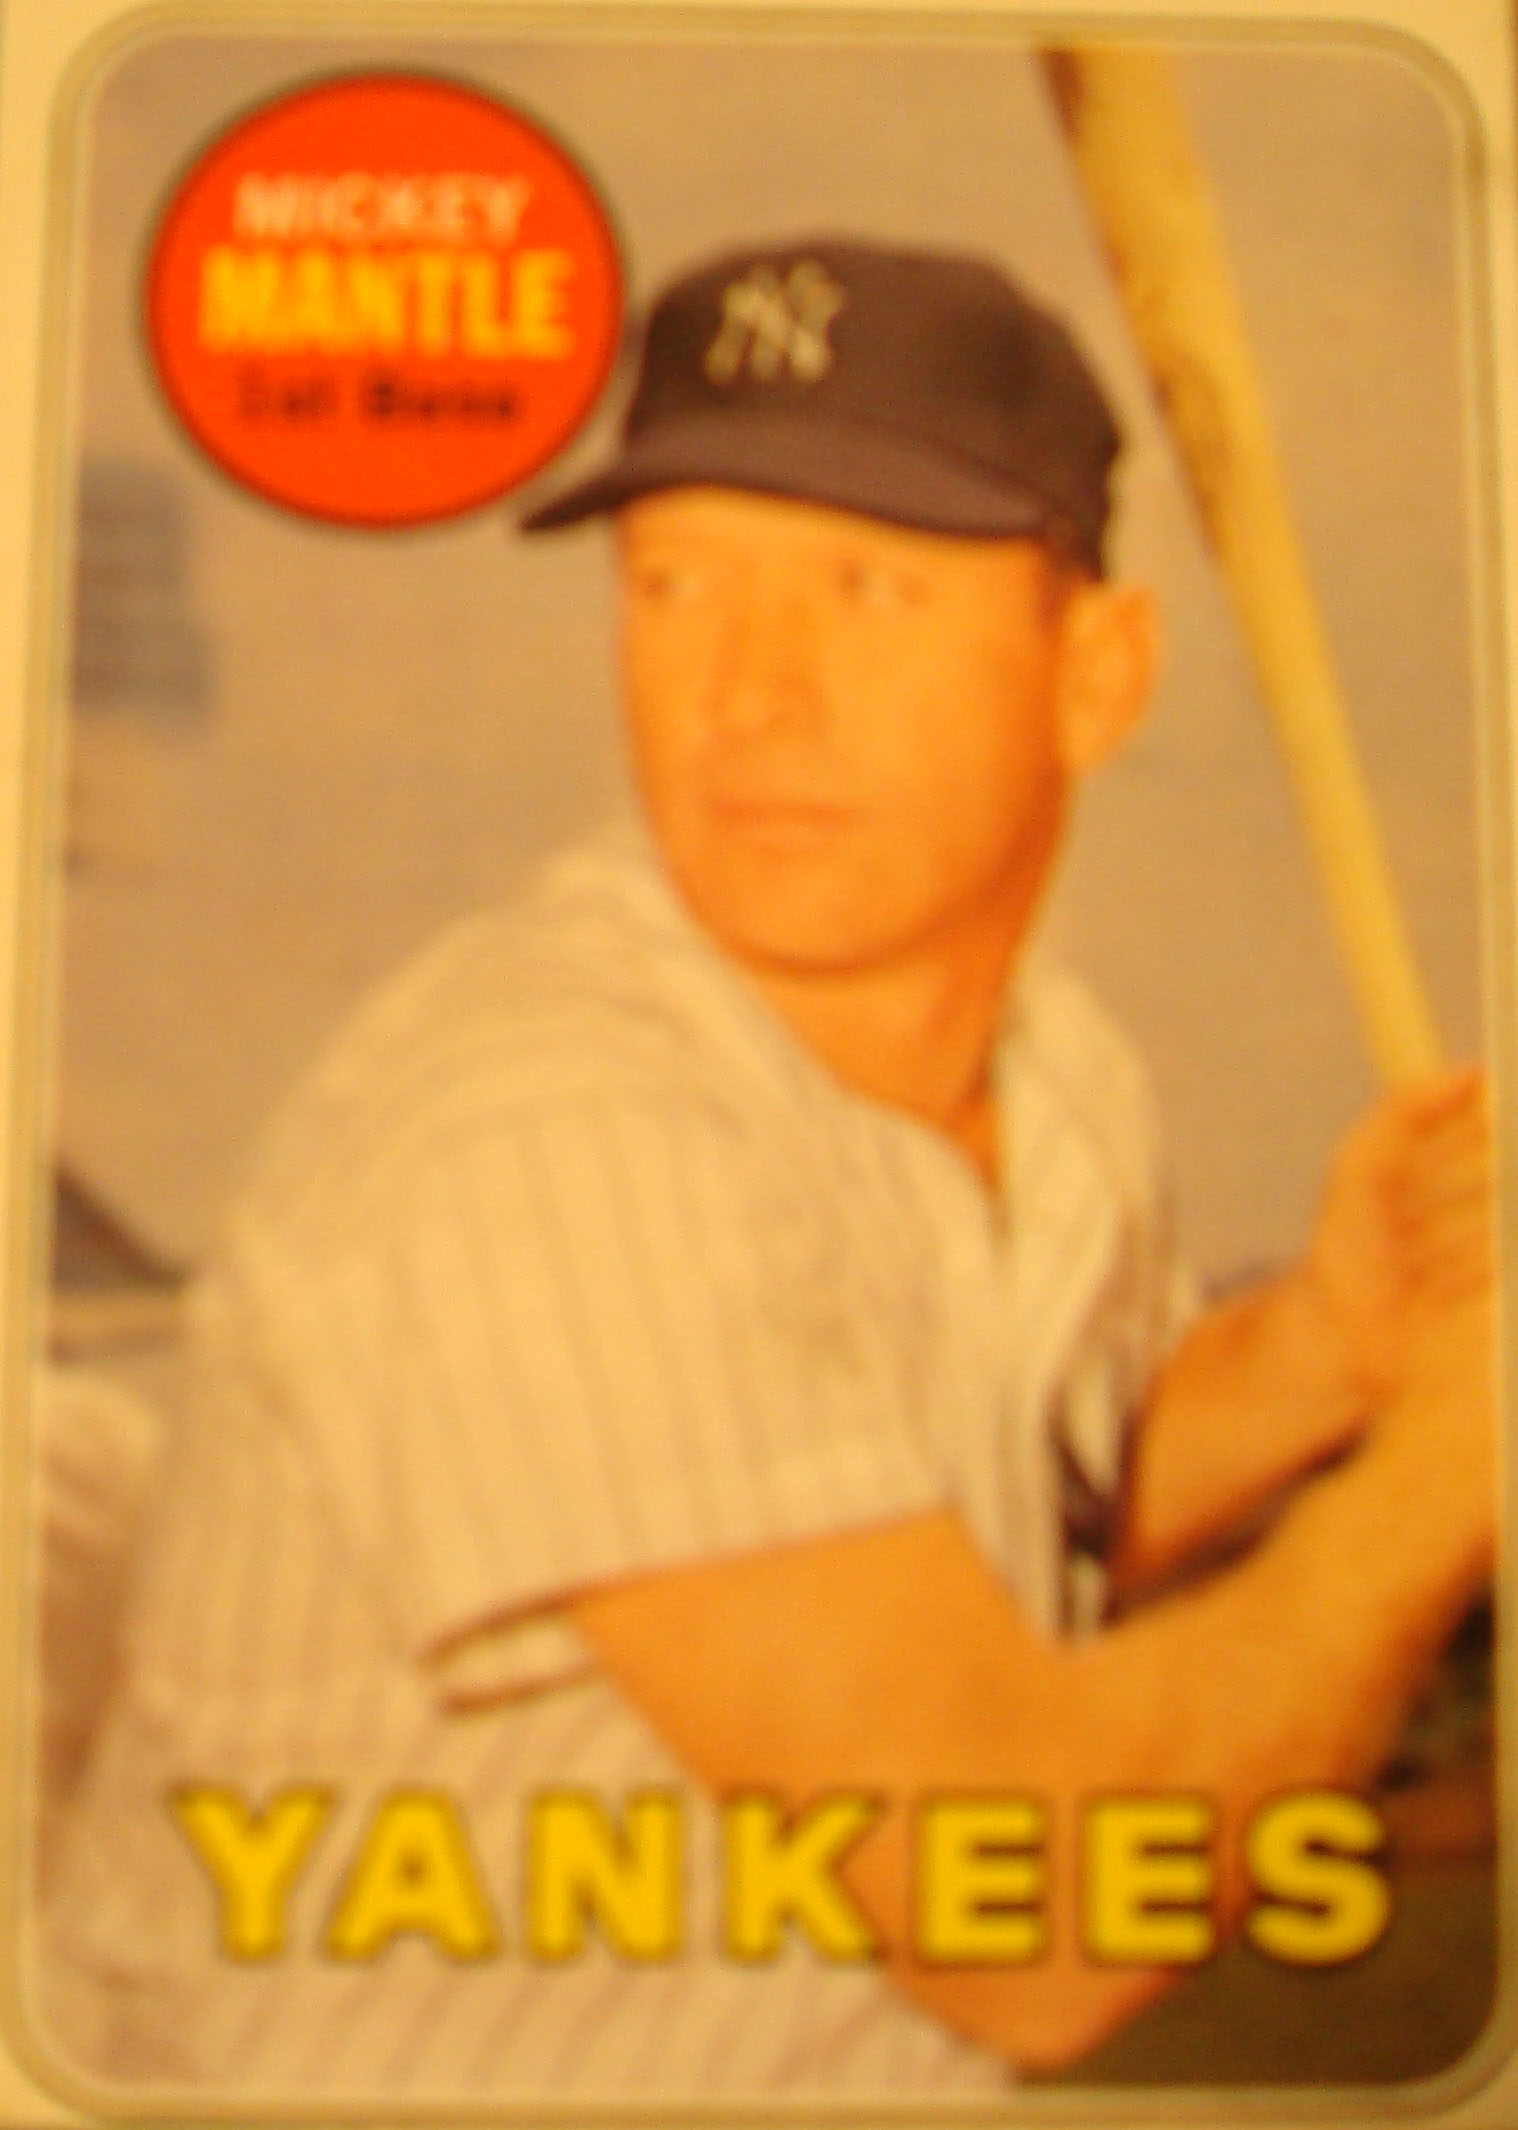 Bds 1st Mickey Mantle Card A 1956 Topps Traded For Agate Marble